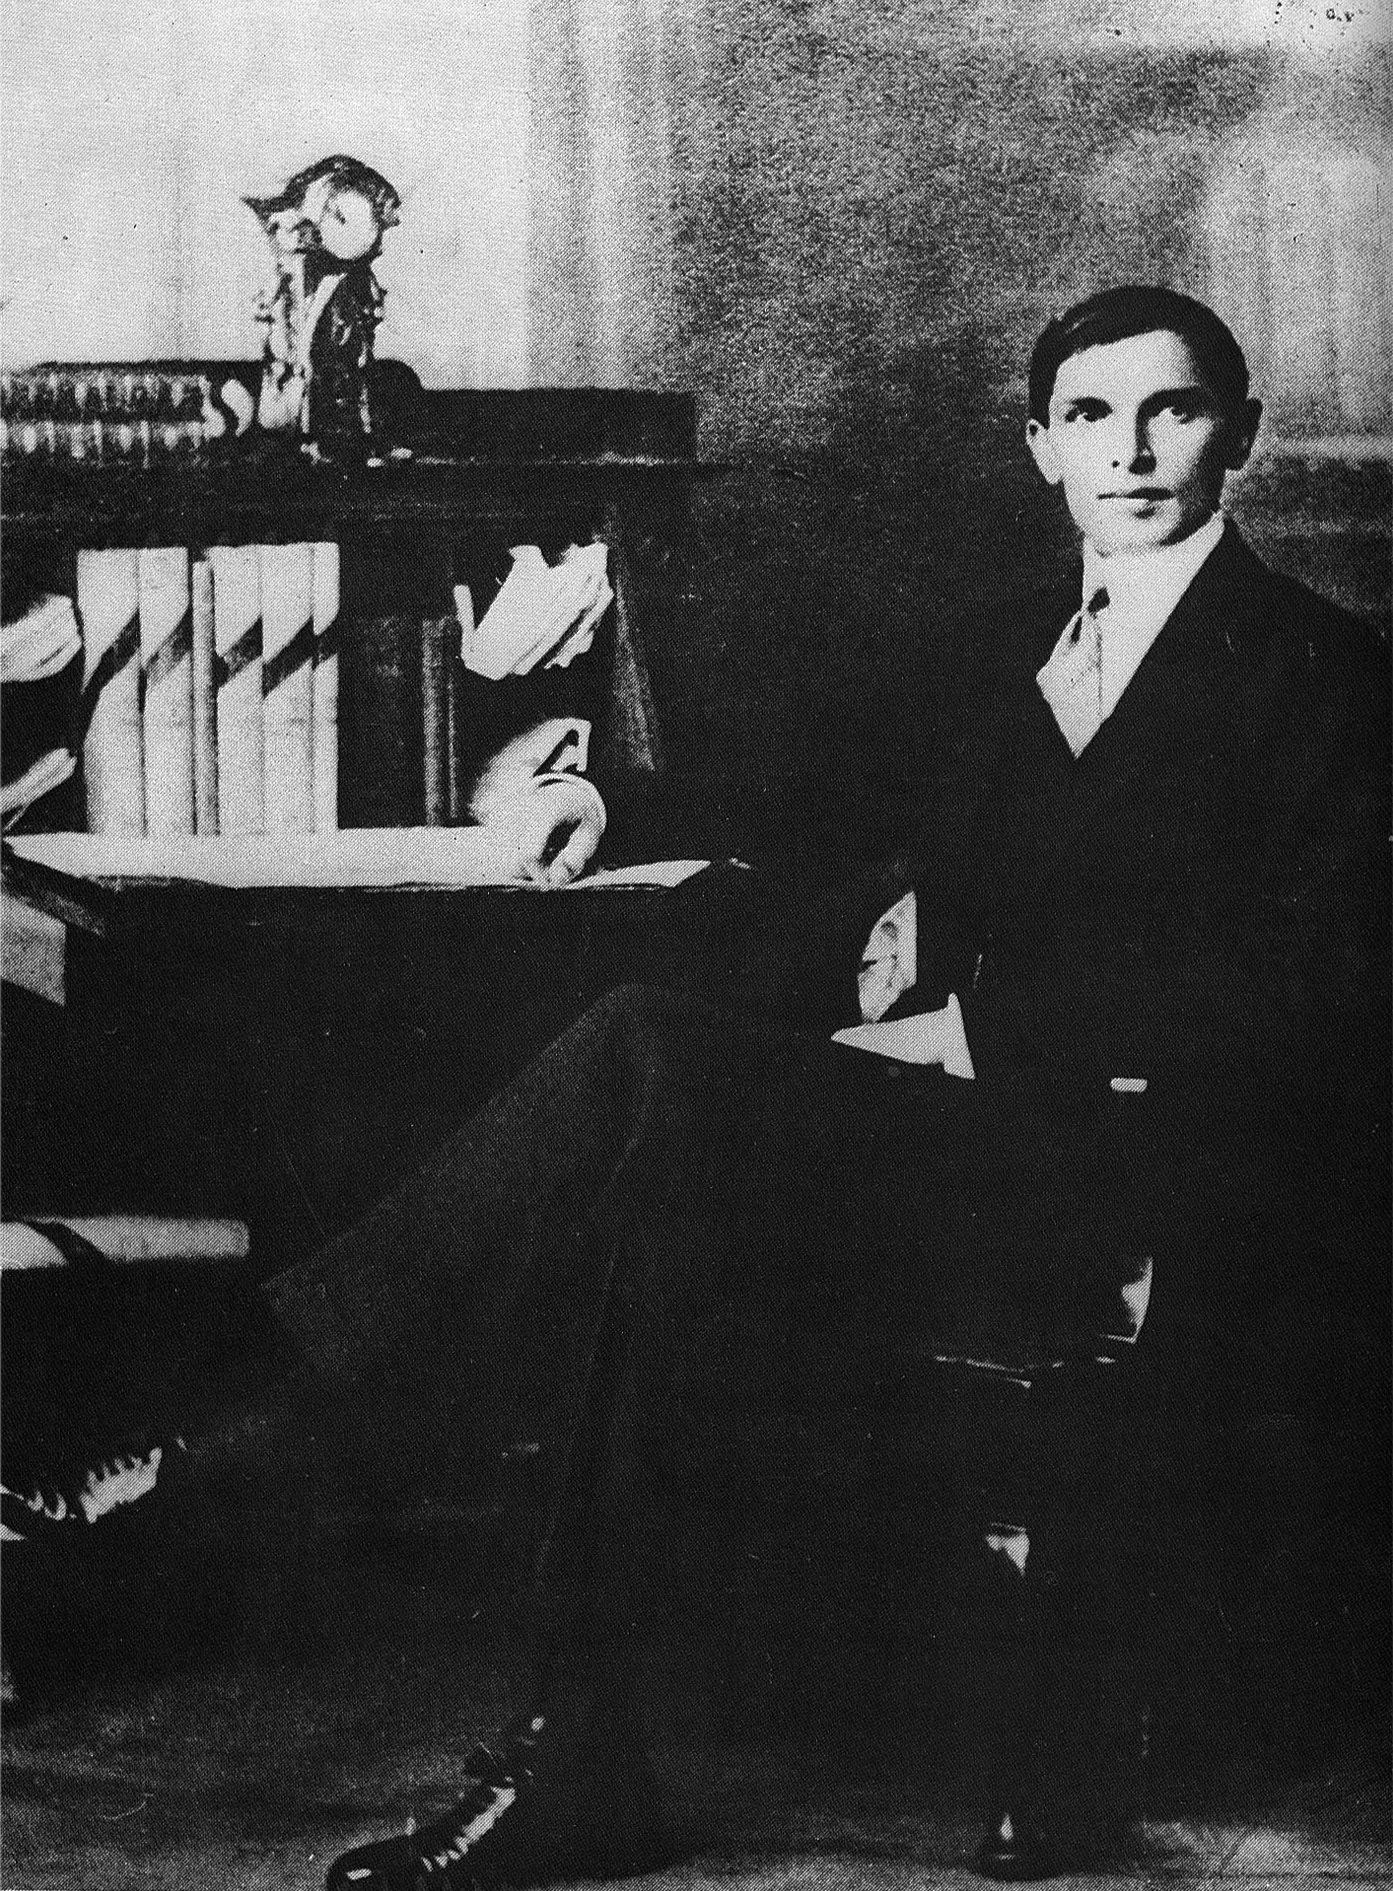 muammad ali jinnah essay Muhammad ali jinnah synopsis on december 25, 1876, muhammad ali jinnah was born in pakistan in the town of karachi he later joined politics and became a member of the indian national congress in the year 1906 after about seven years, muhammad ali jinnah became part of the indian muslim.